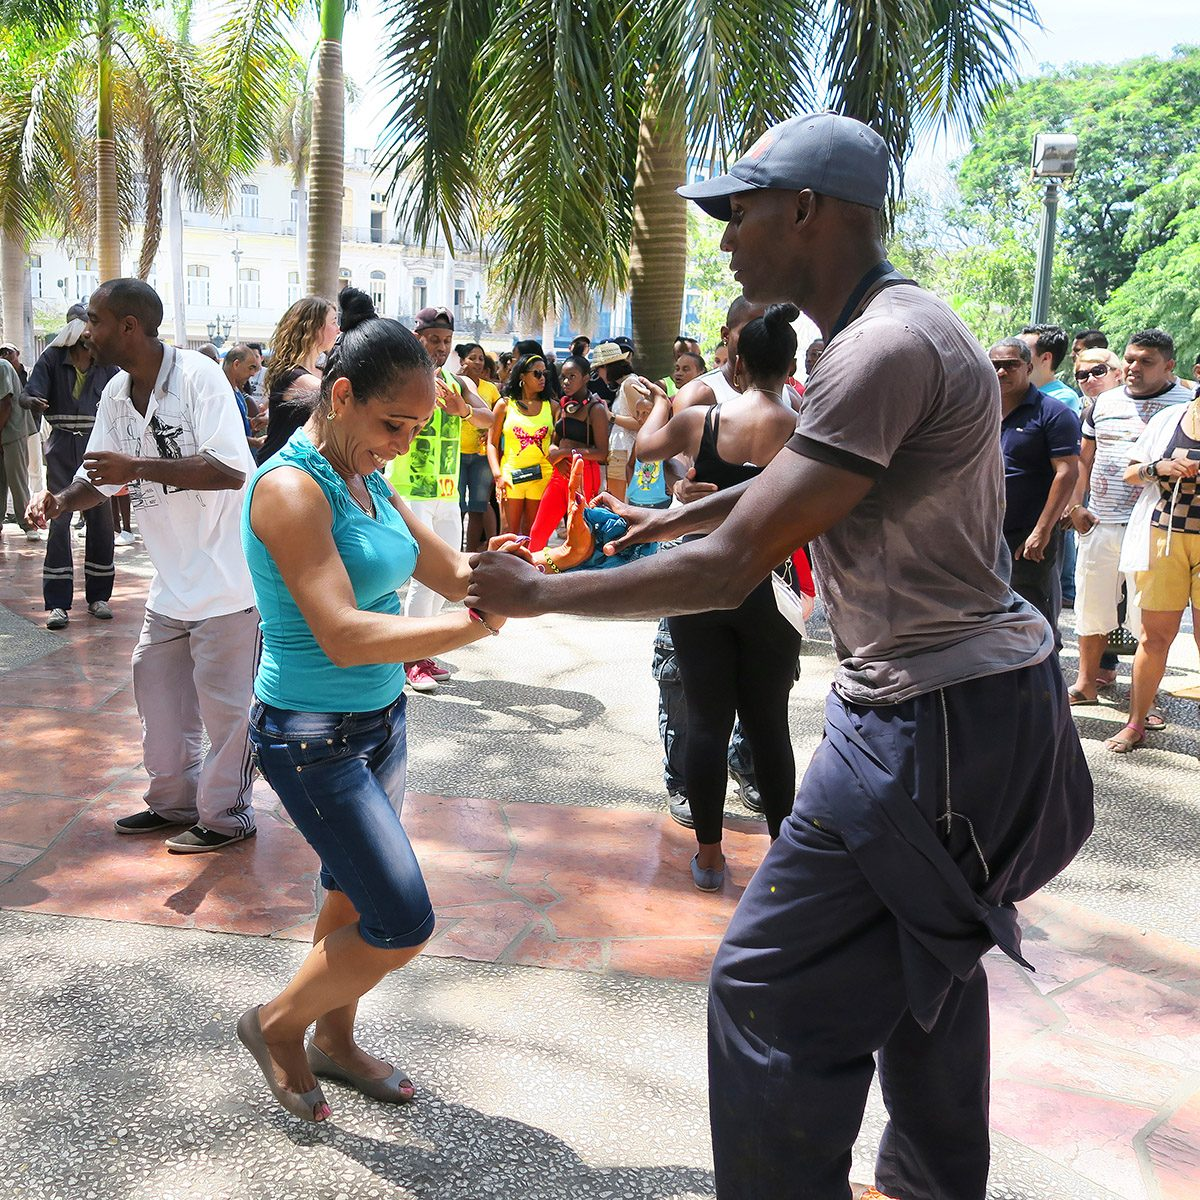 street dances of salsa in one of the central squares in Havana, where both the locals and the tourists can take the dance floor and dance till they drop